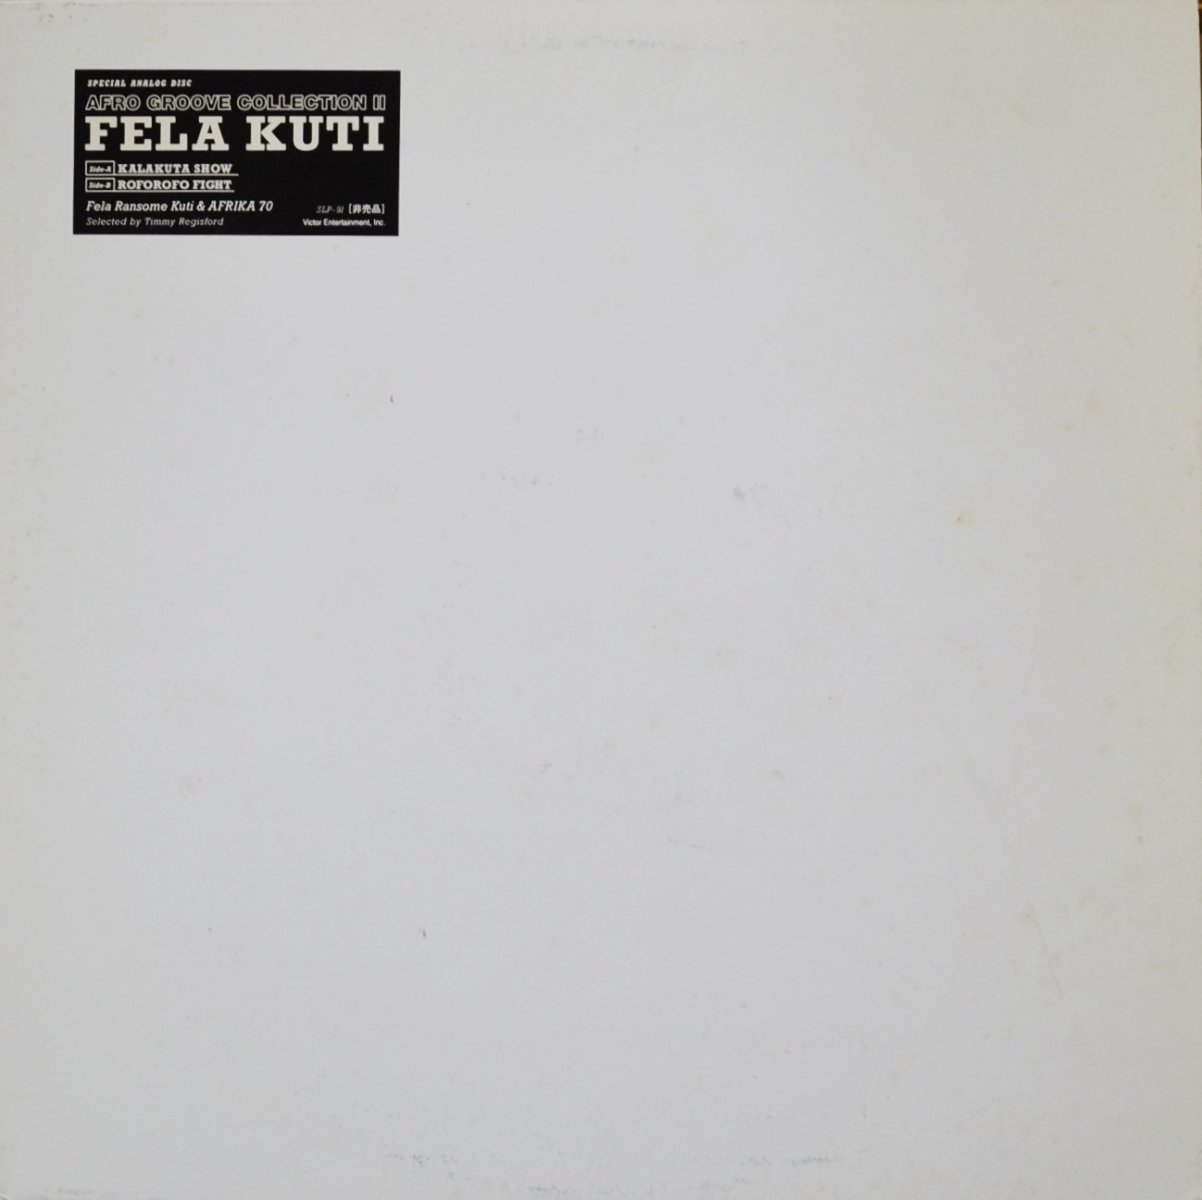 FELA KUTI / KALAKUTA SHOW / ROFOROFO FIGHT (SELECTED TIMMY REGISFORD (12